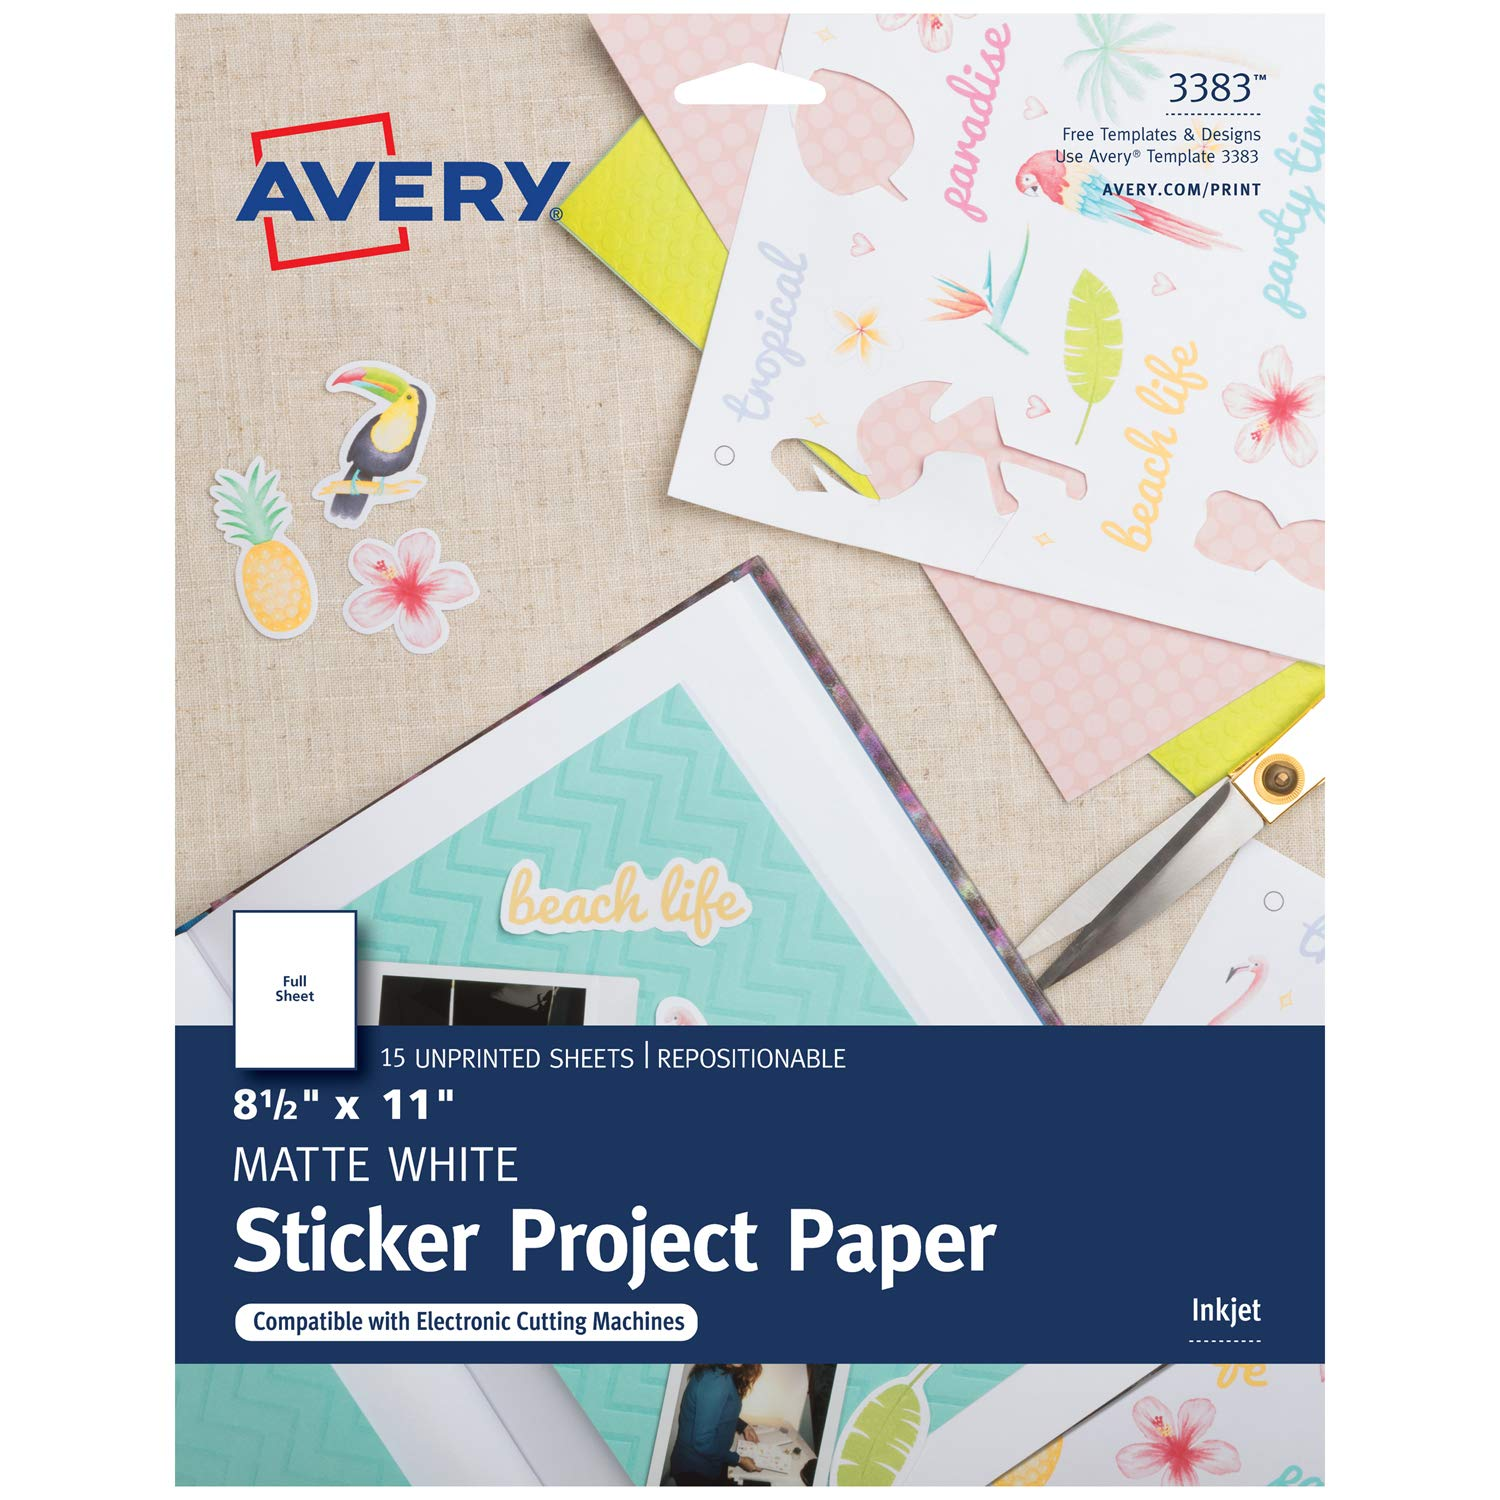 photograph regarding Avery Printable Stickers identified as Avery Printable Sticker Paper, Matte White, 8.5 x 11 Inches, Inkjet Printers, 15 Sheets (3383)